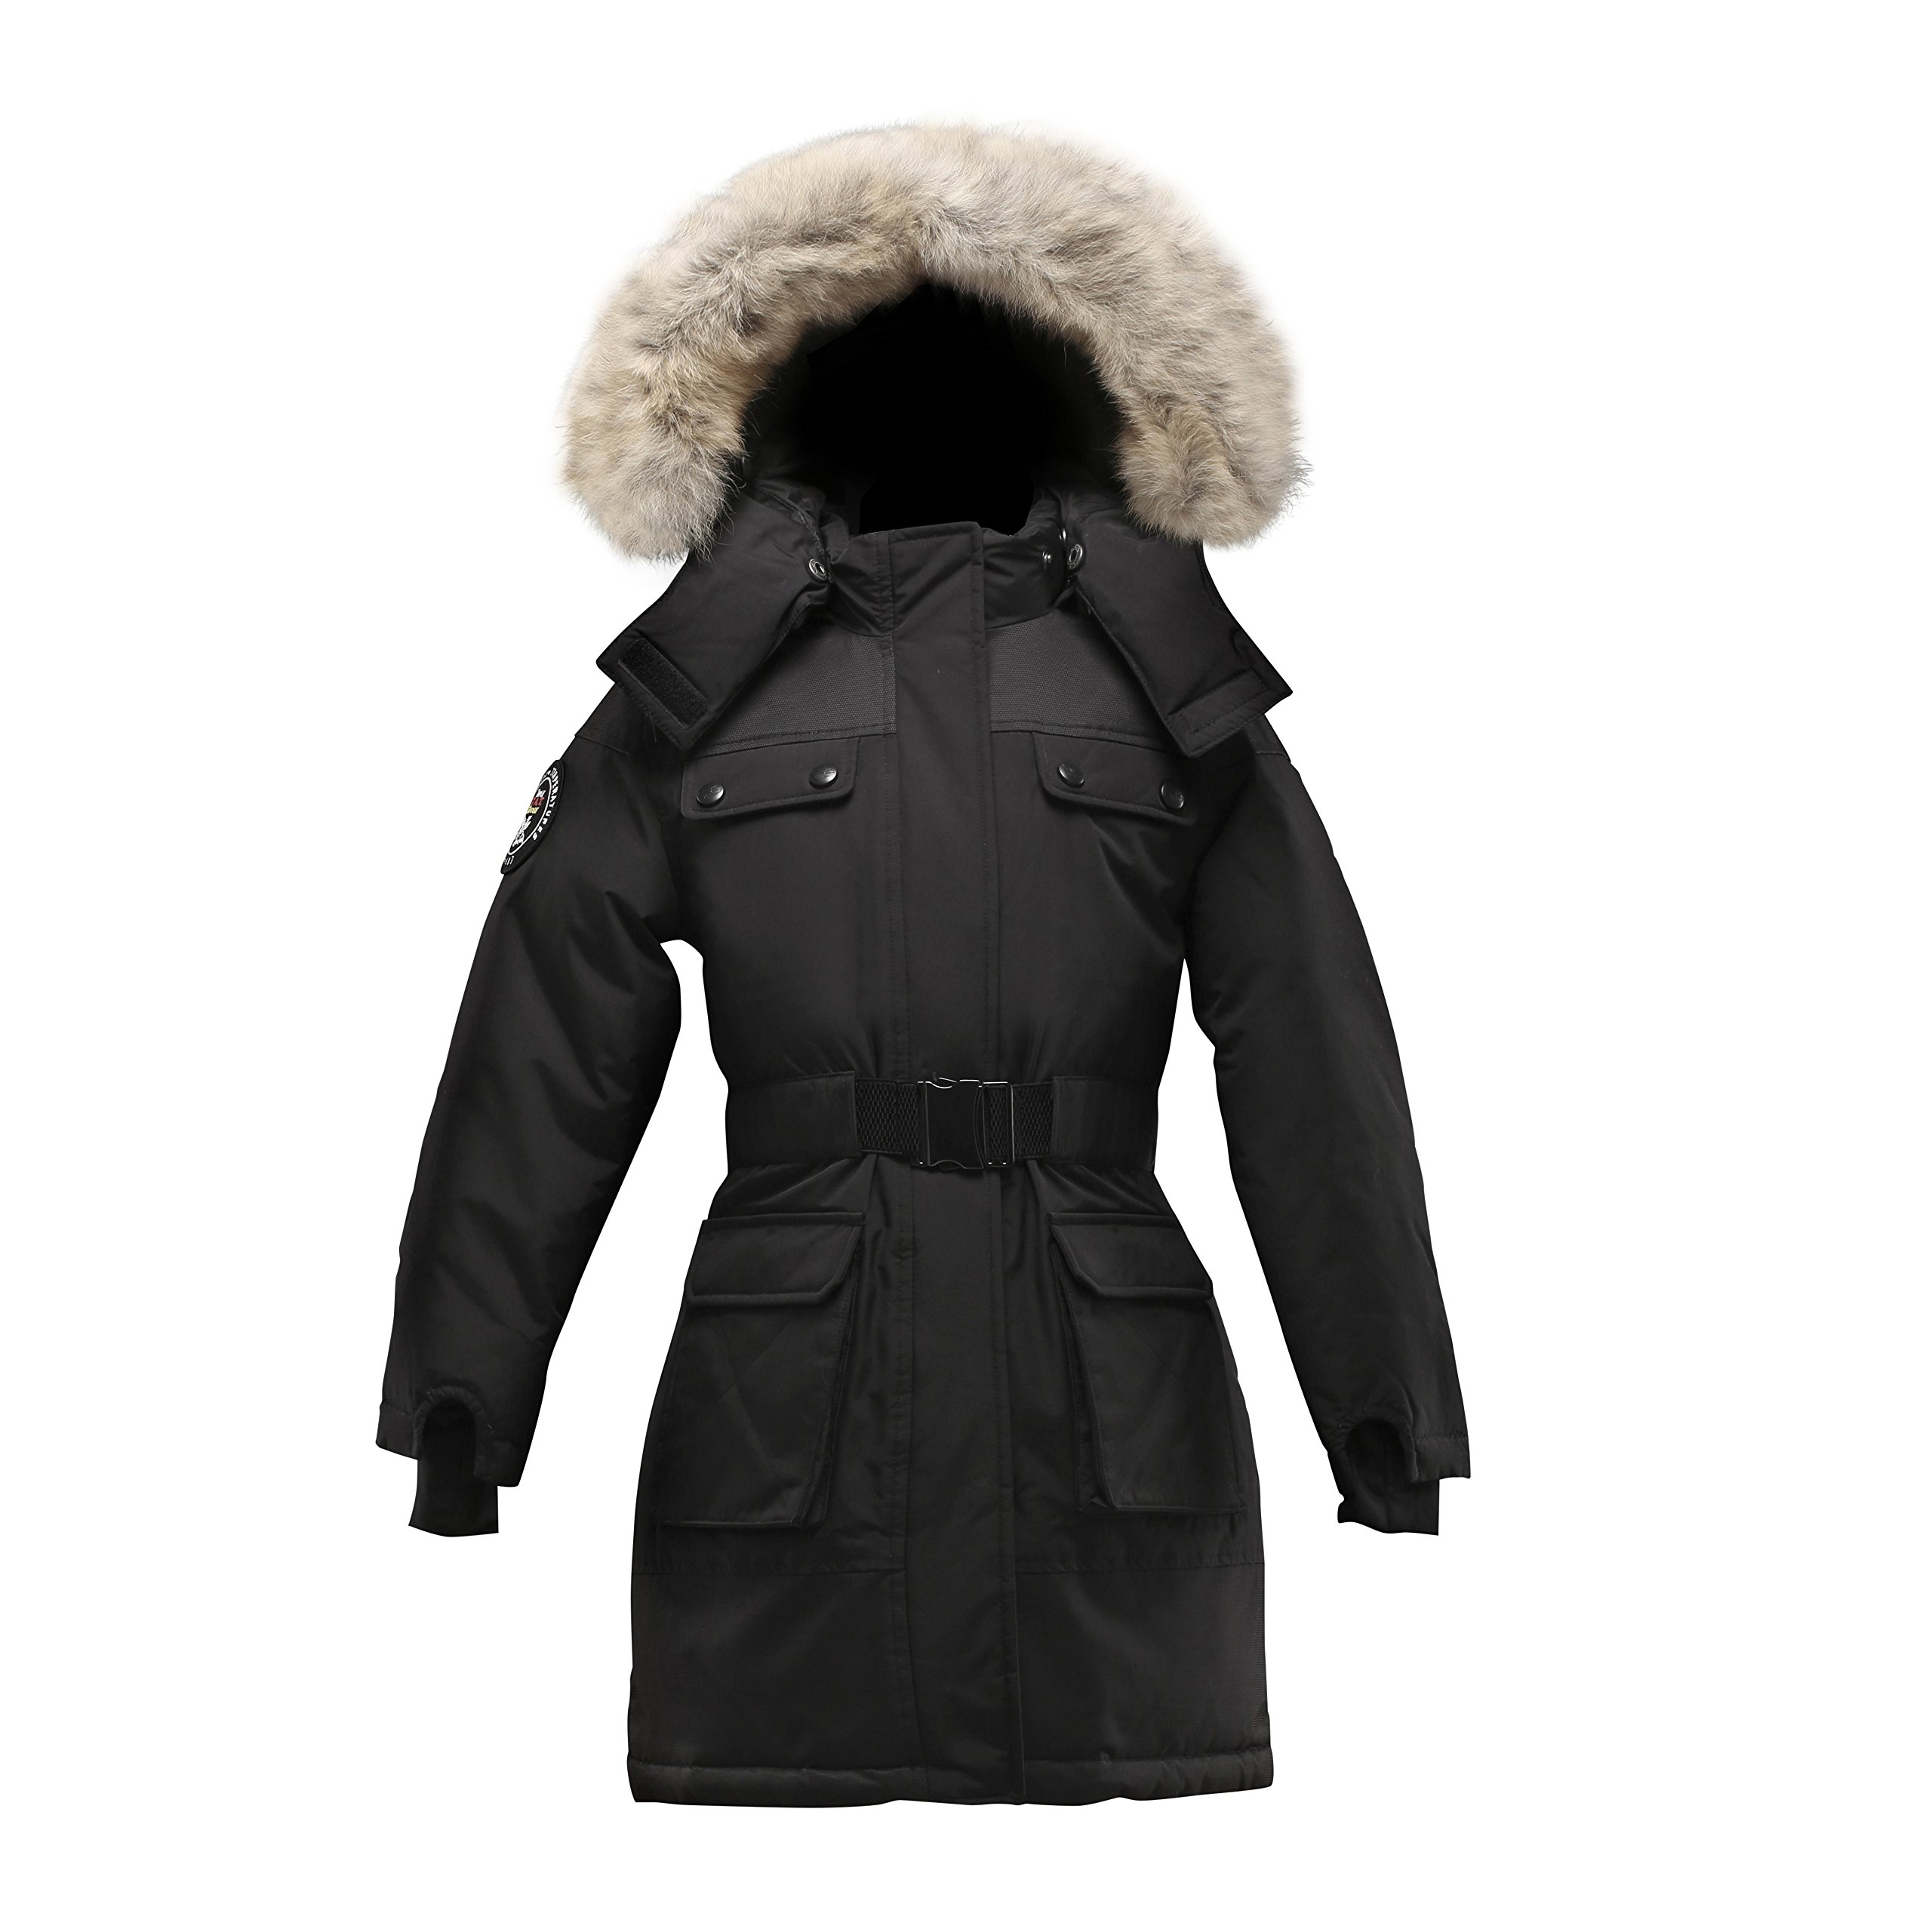 Triple F.A.T. Goose Arkona Girls Down Jacket Parka With Real Coyote Fur (8, Black)